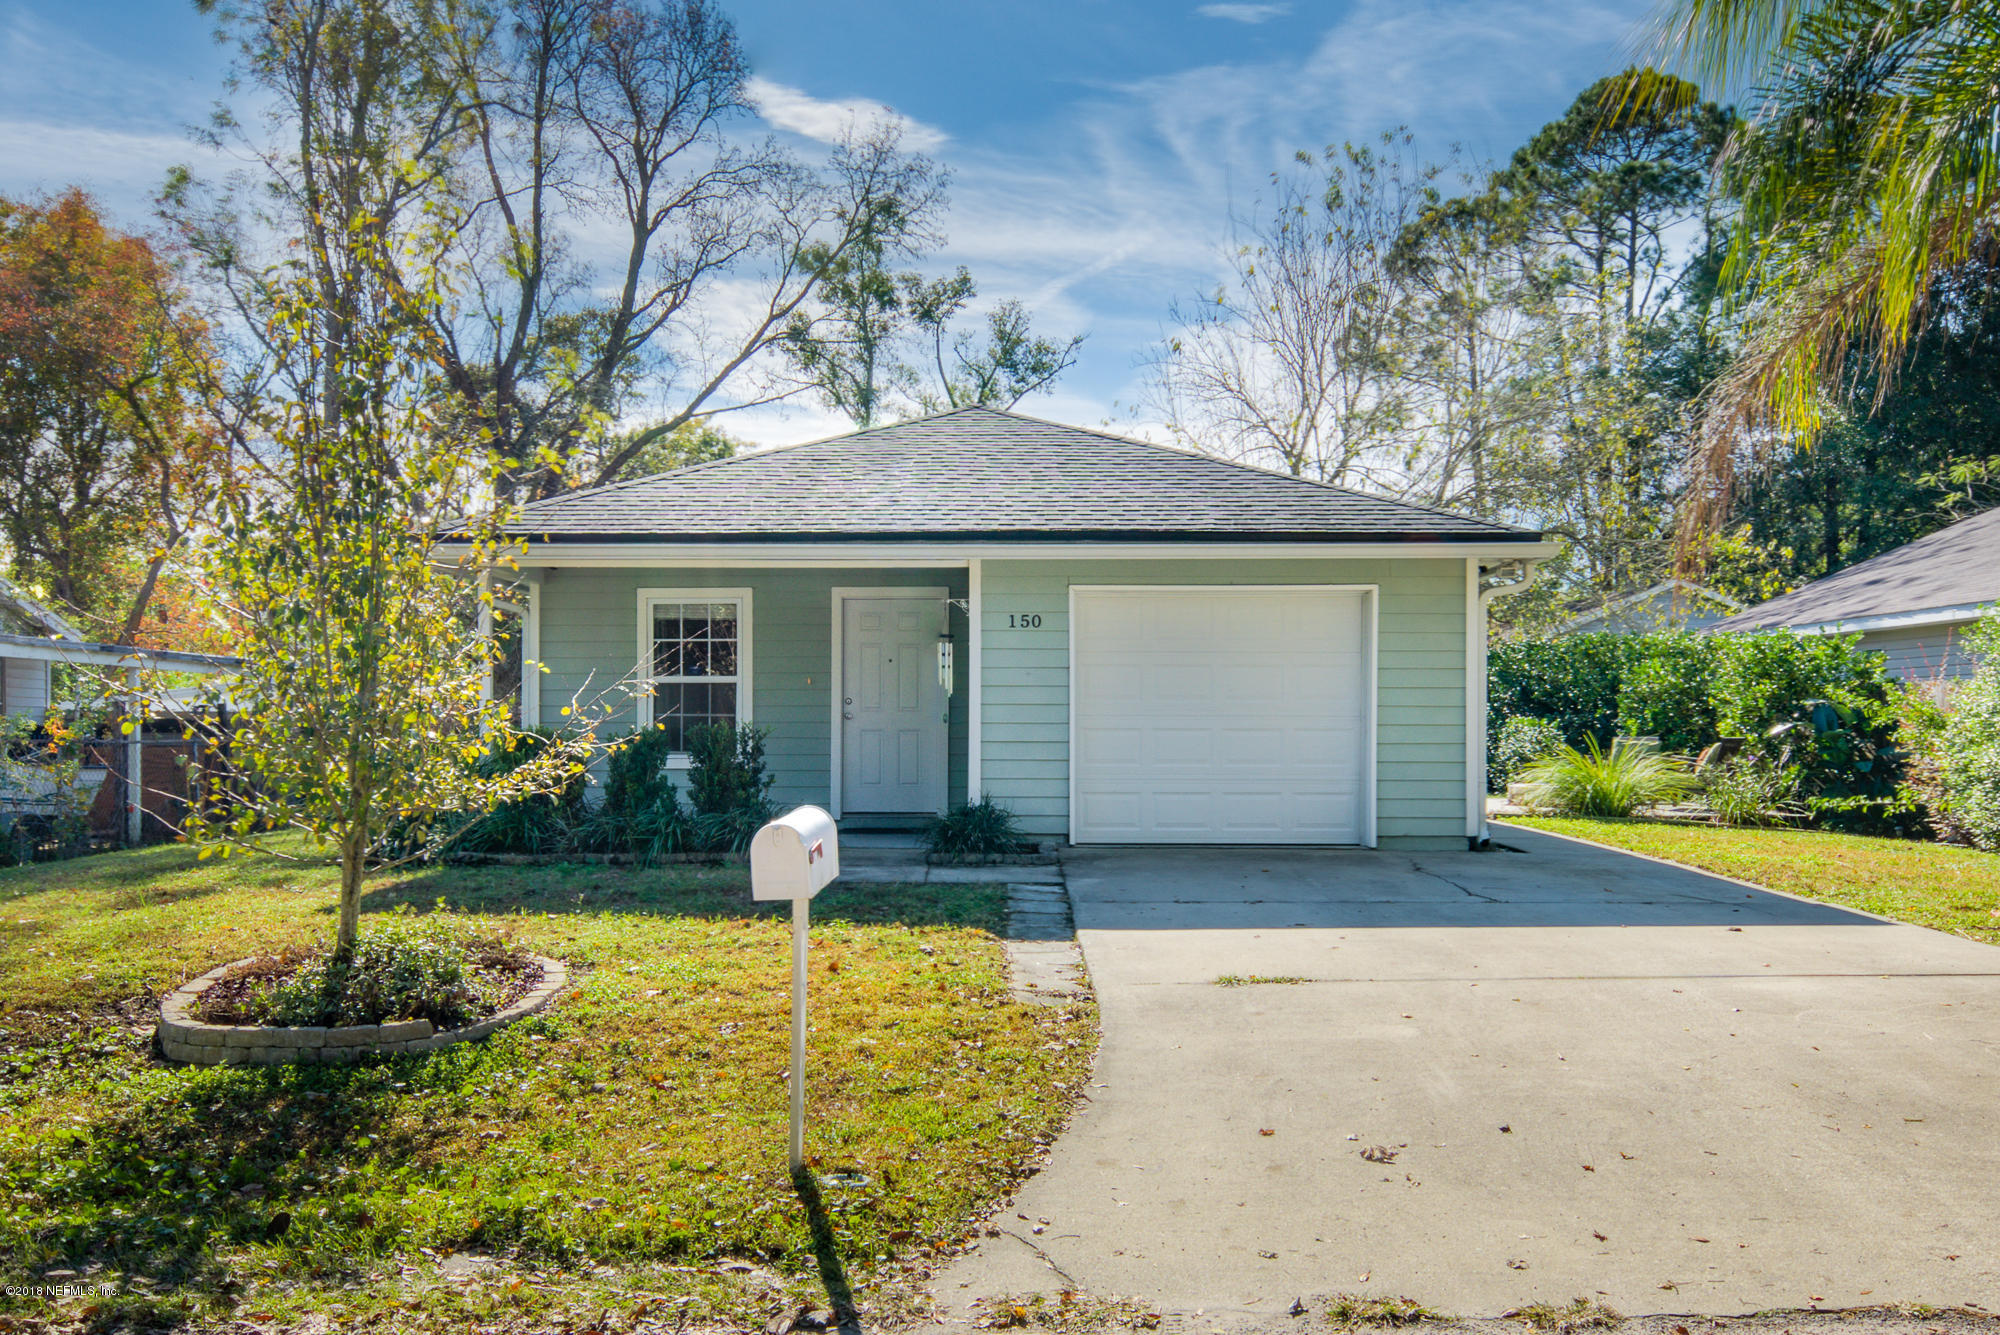 150 ORANGEDALE, JACKSONVILLE, FLORIDA 32218, 3 Bedrooms Bedrooms, ,2 BathroomsBathrooms,Residential - single family,For sale,ORANGEDALE,970085